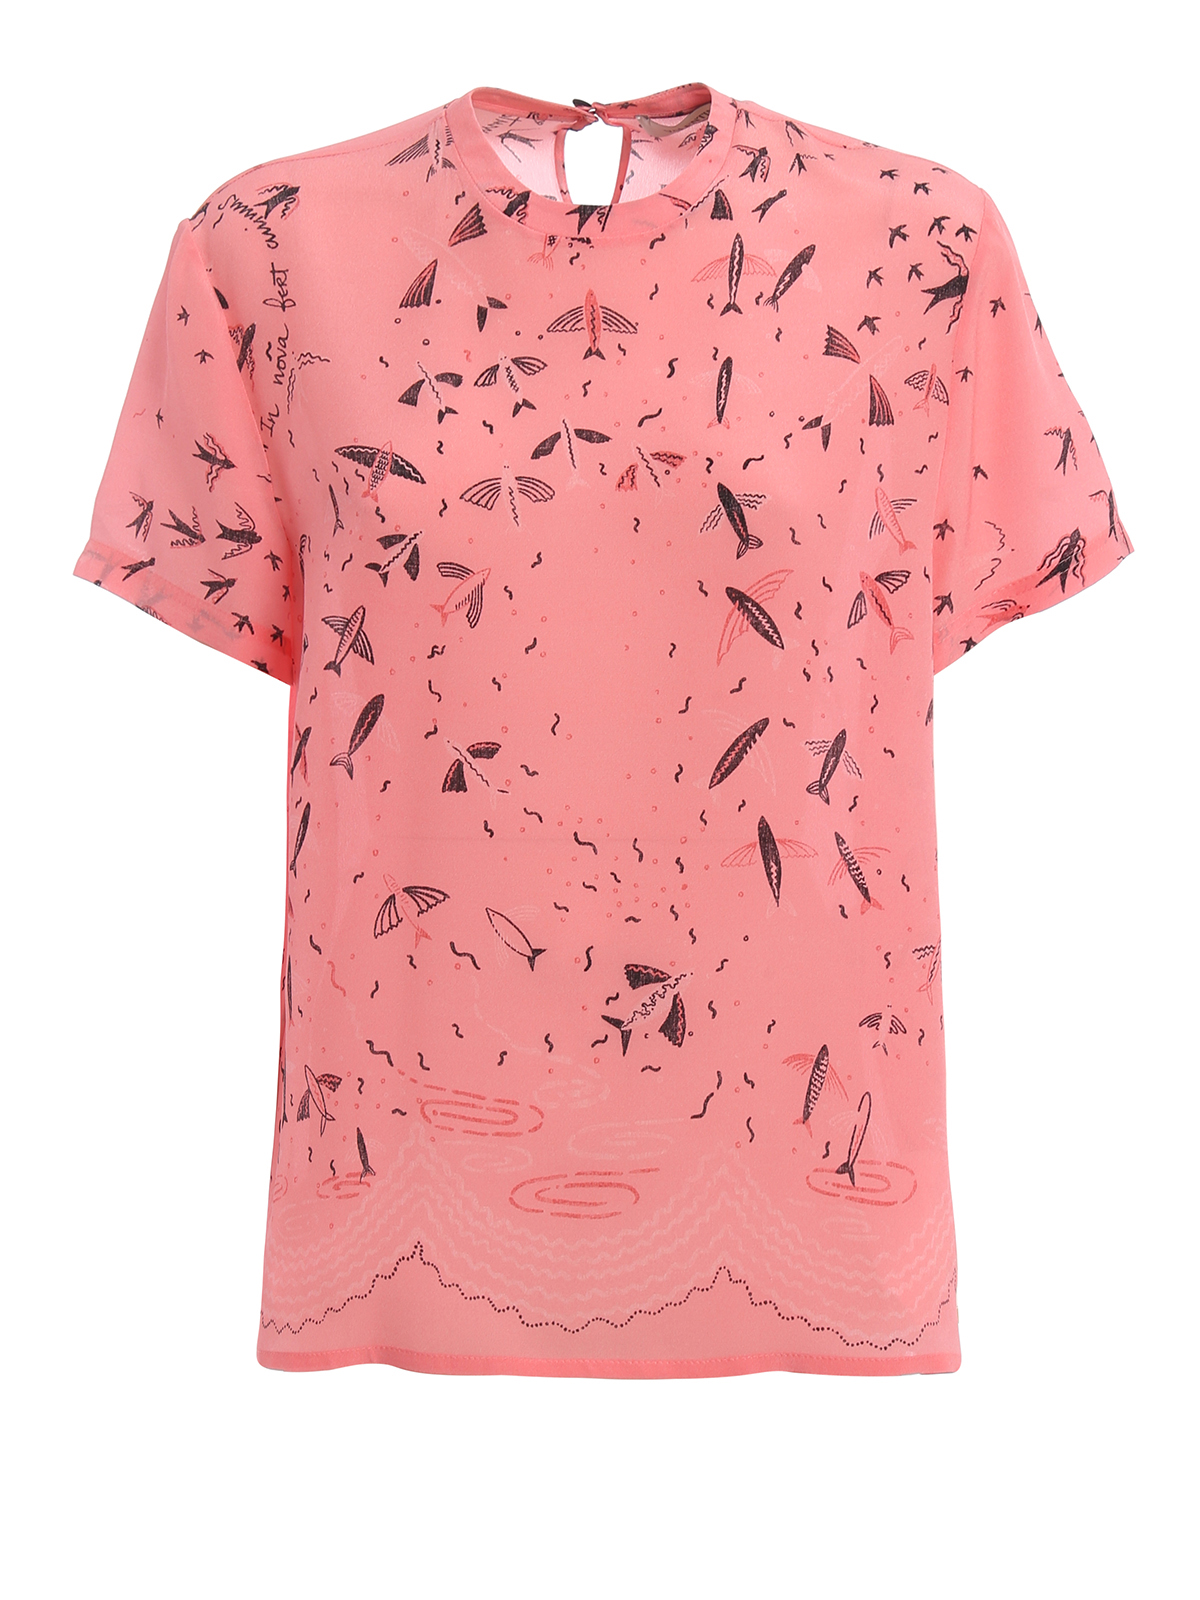 Exclusive print silk t shirt by valentino t shirts ikrix for Print one t shirt